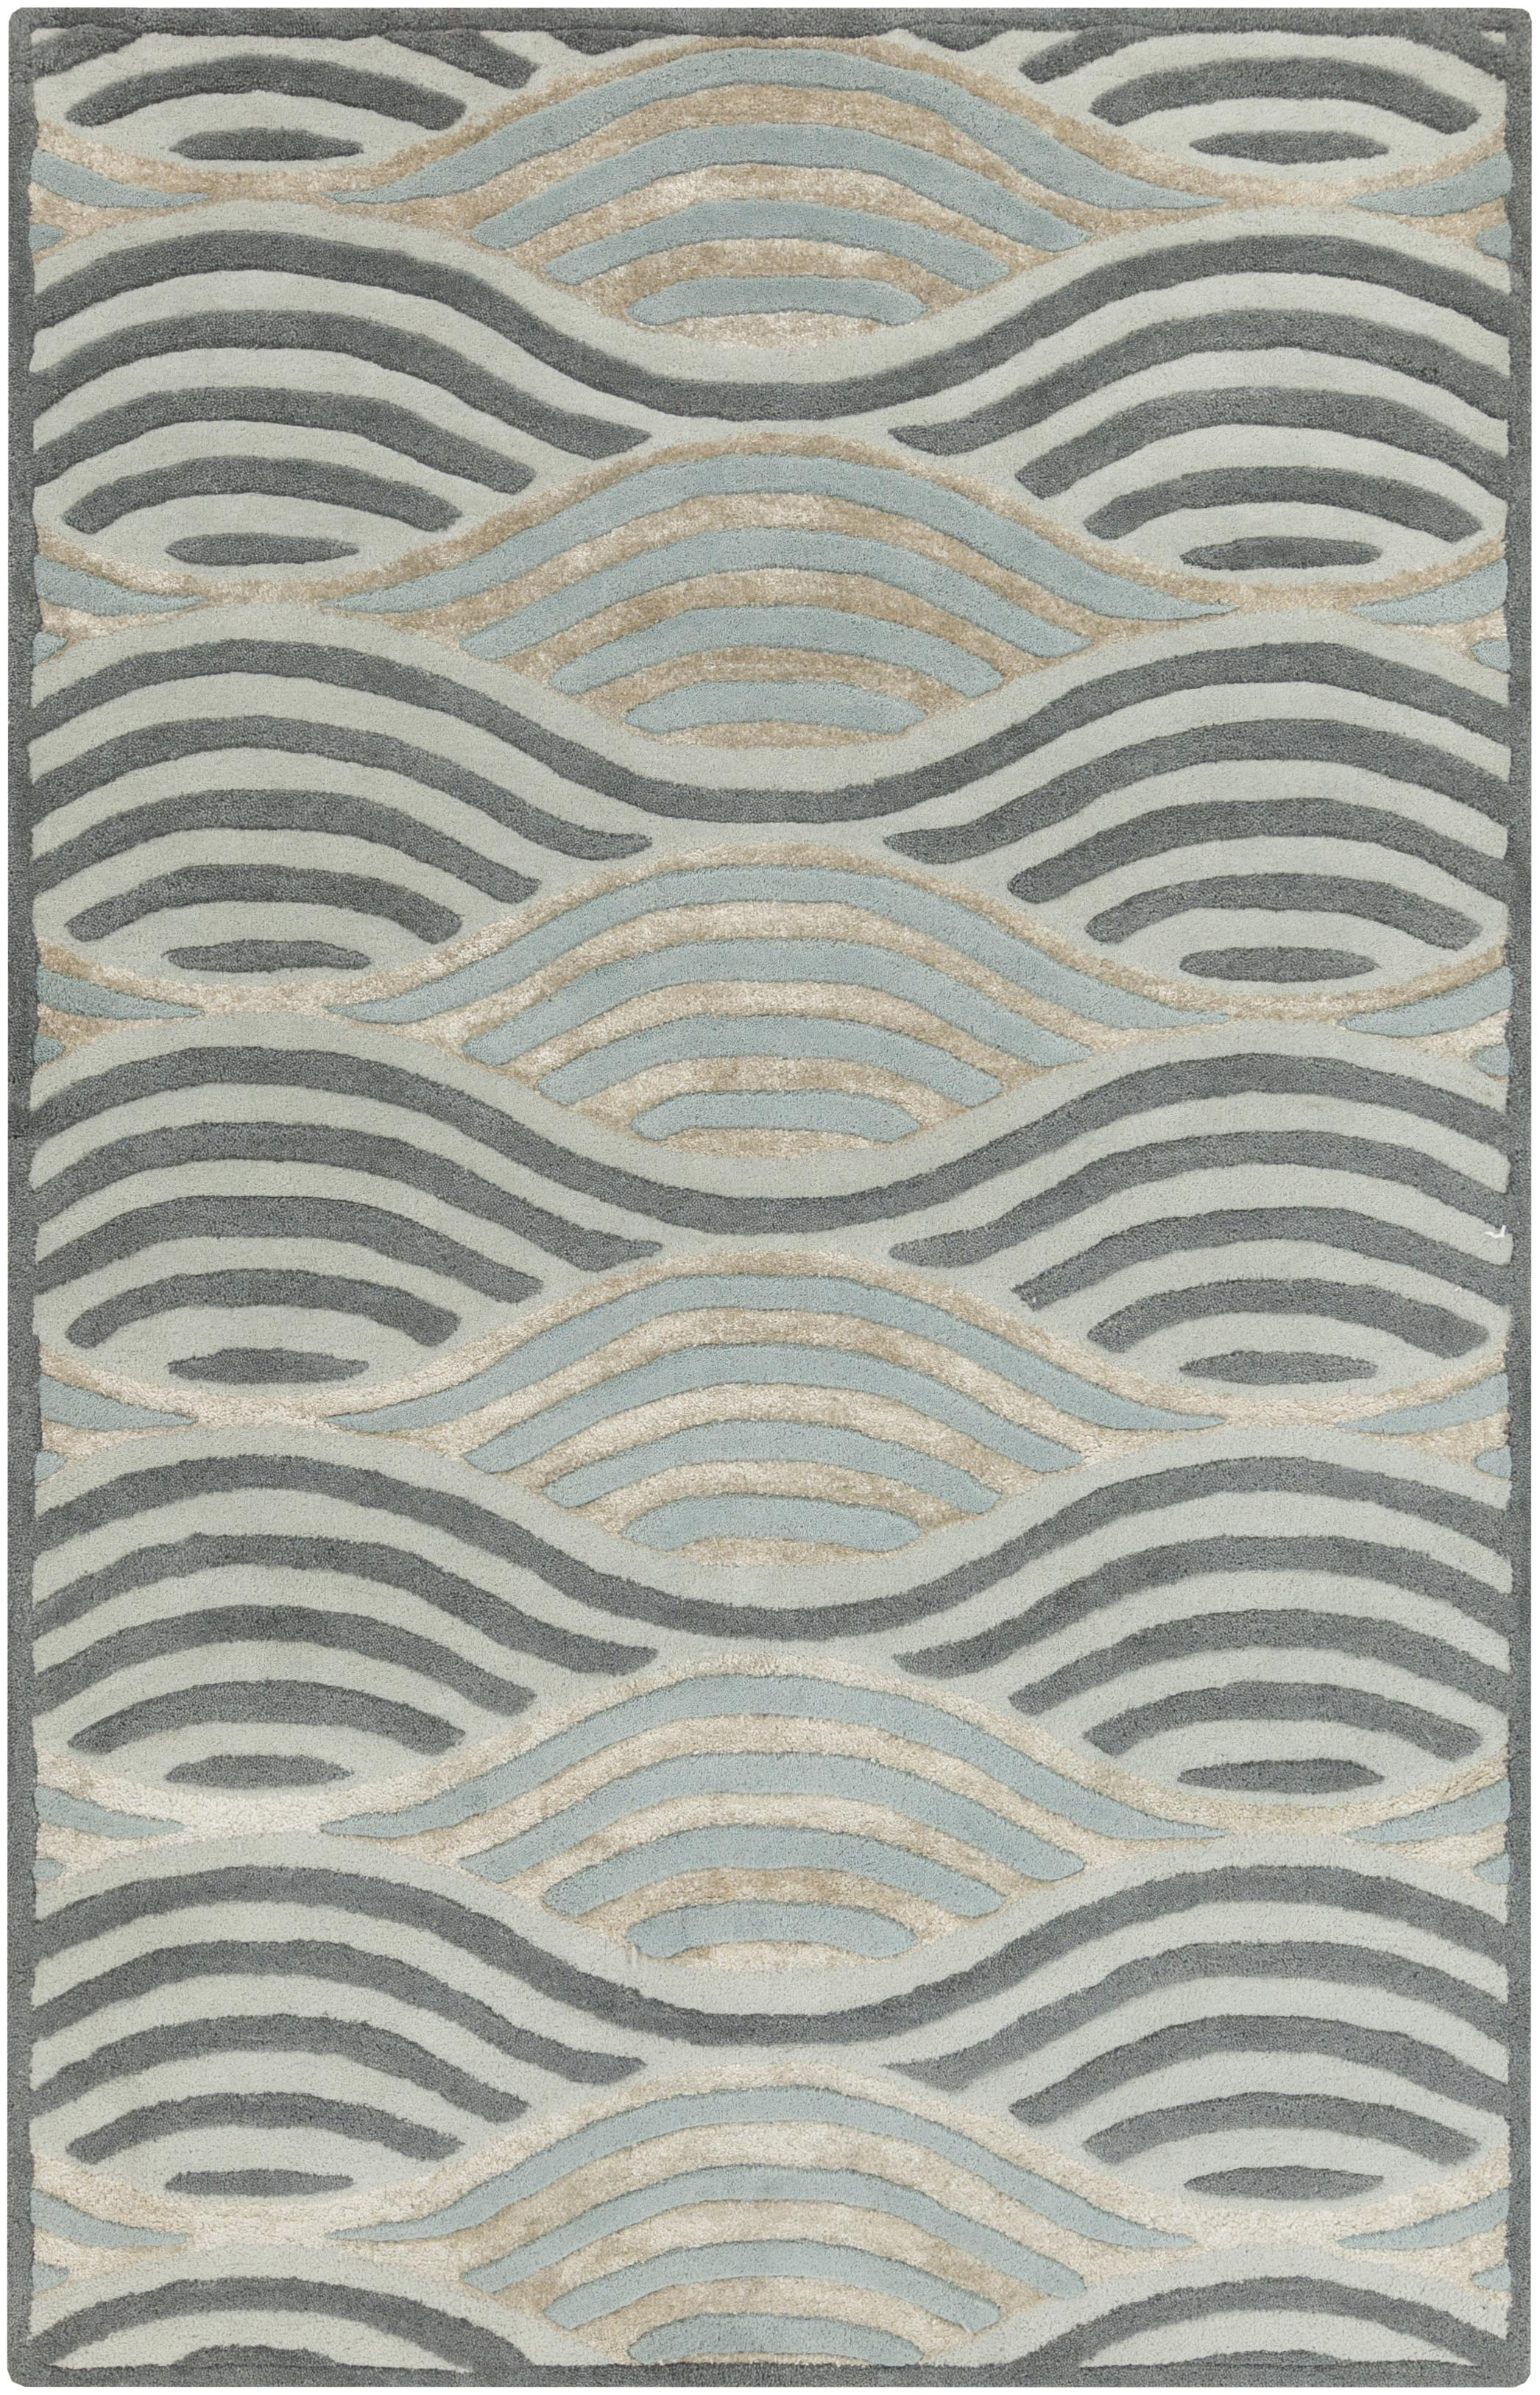 Universal 2' x 3' by Ruby-Gordon Accents at Ruby Gordon Home